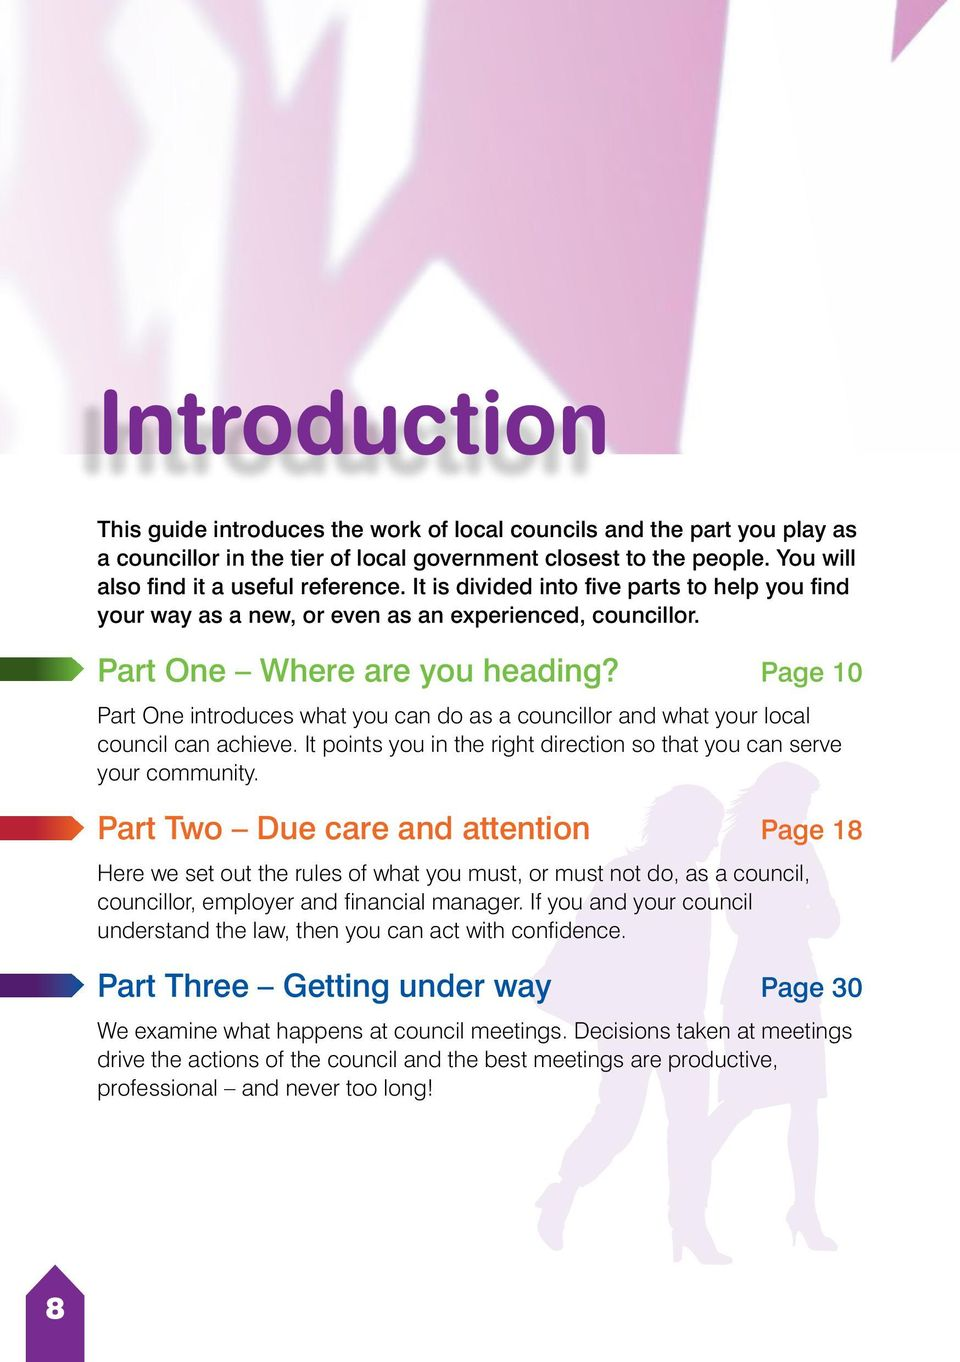 Page 10 Part One introduces what you can do as a councillor and what your local council can achieve. It points you in the right direction so that you can serve your community.